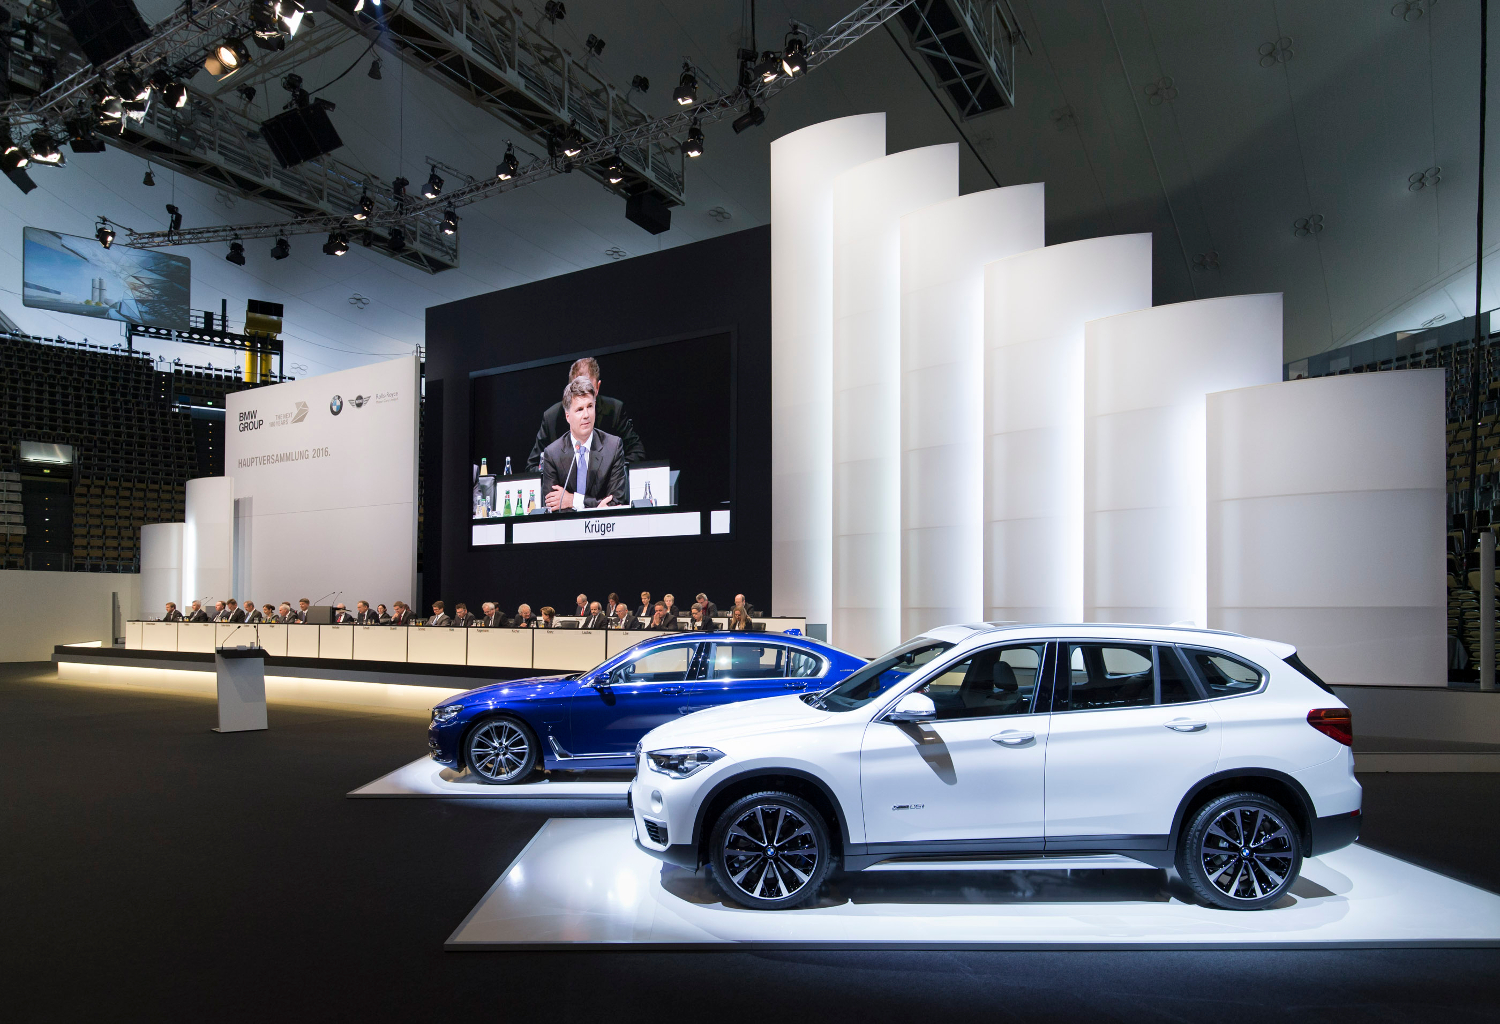 96th Annual General Meeting of BMW AG at Olympiahalle in Munich on 12 May 201